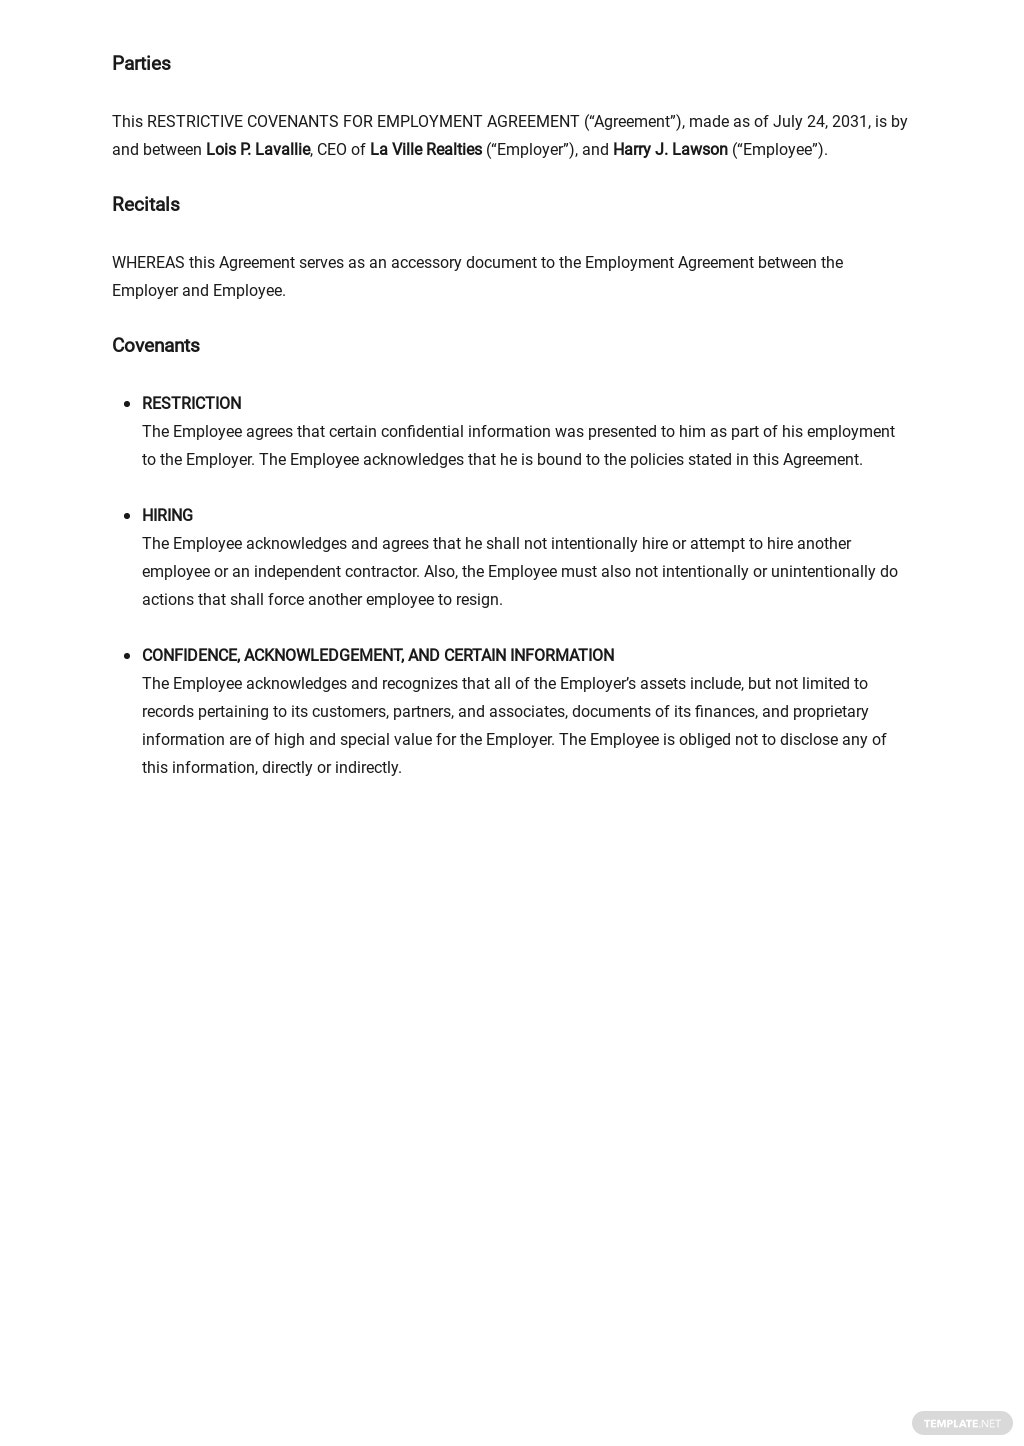 Restrictive Covenants for Employment Agreement Template 1.jpe